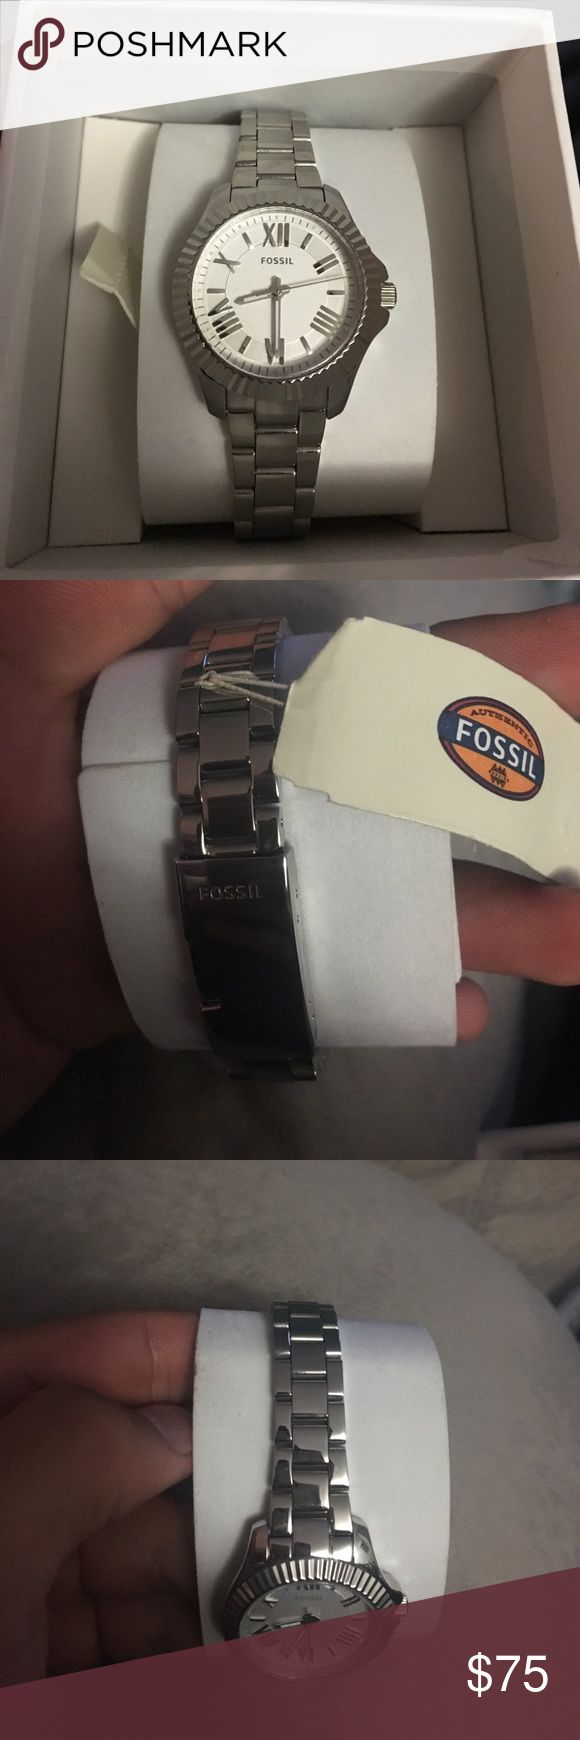 Women's fossil watch Brand new never worn stainless steel watch with tags and original box Fossil Jewelry Bracelets